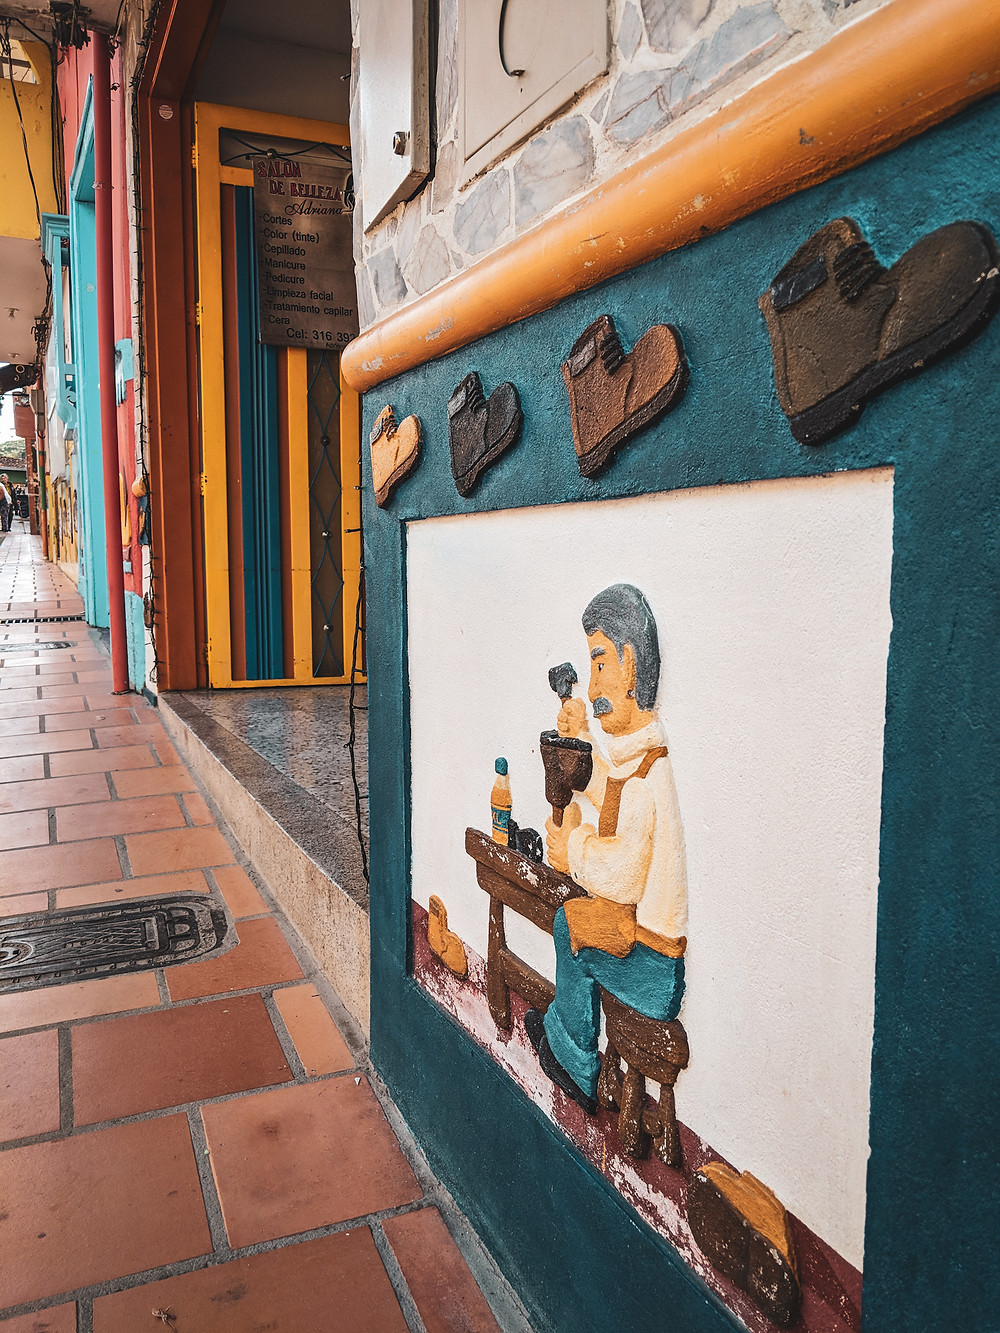 A zocolas outside of a building in the colorful Guatapé, Colombia.